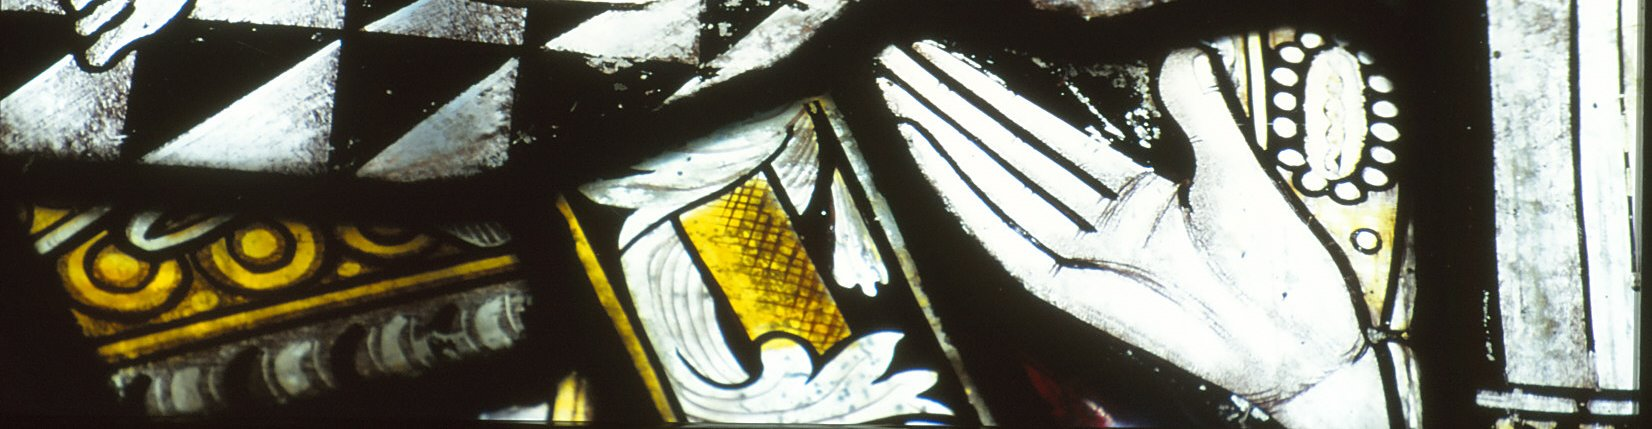 Fragments of stained glass at Llanllugan